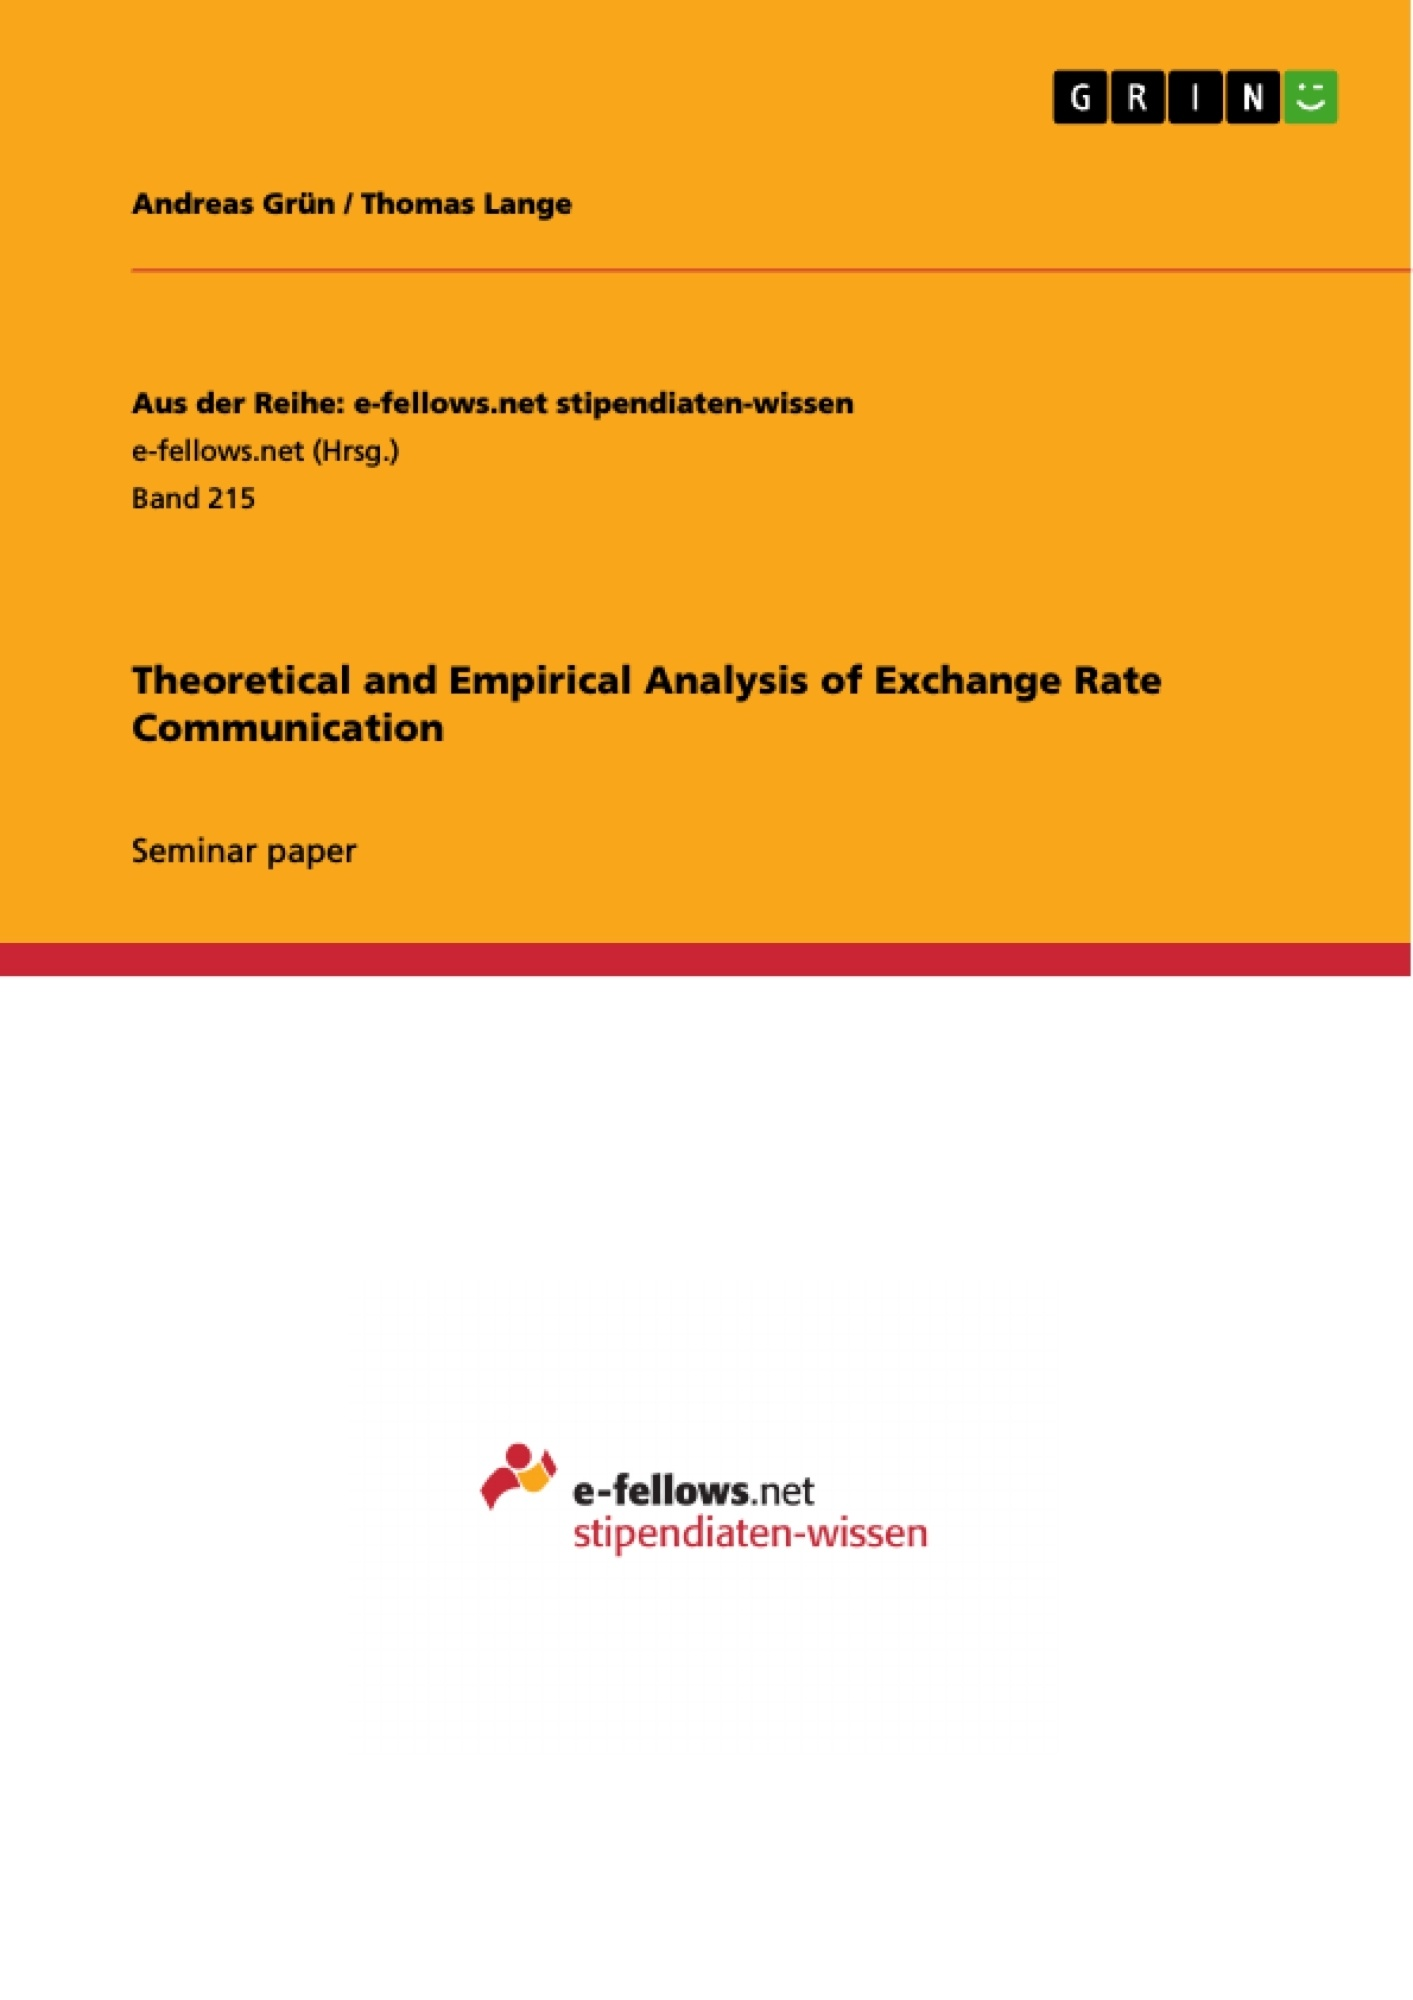 Title: Theoretical and Empirical Analysis of Exchange Rate Communication